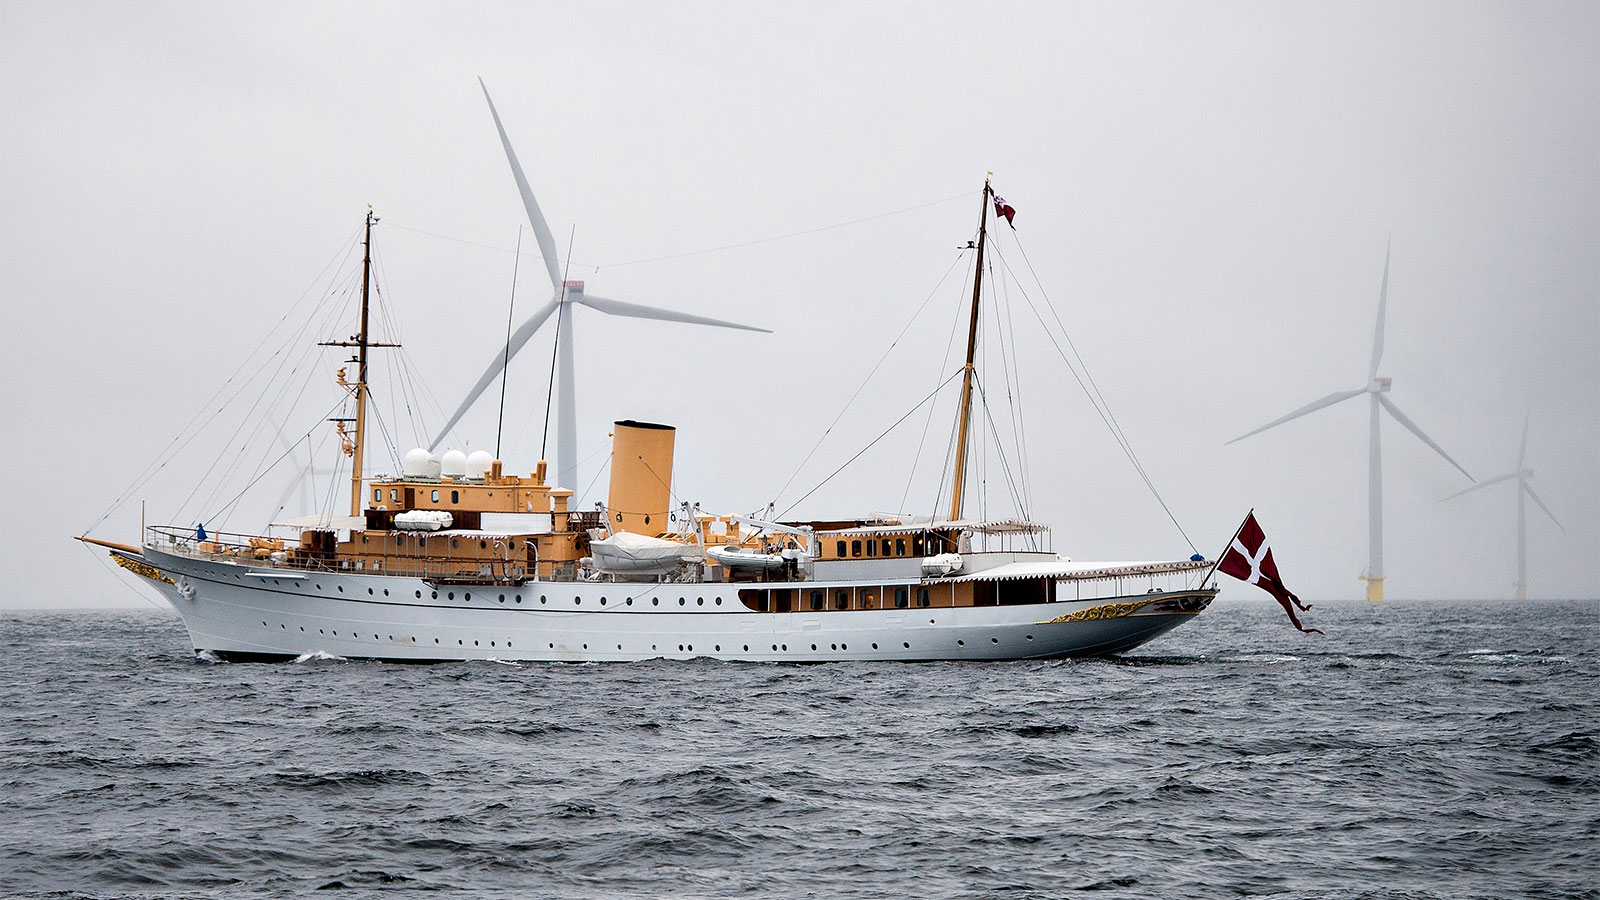 The Royal Danish Yacht passes by Denmark's largest offshore wind farm off of Anholt Island